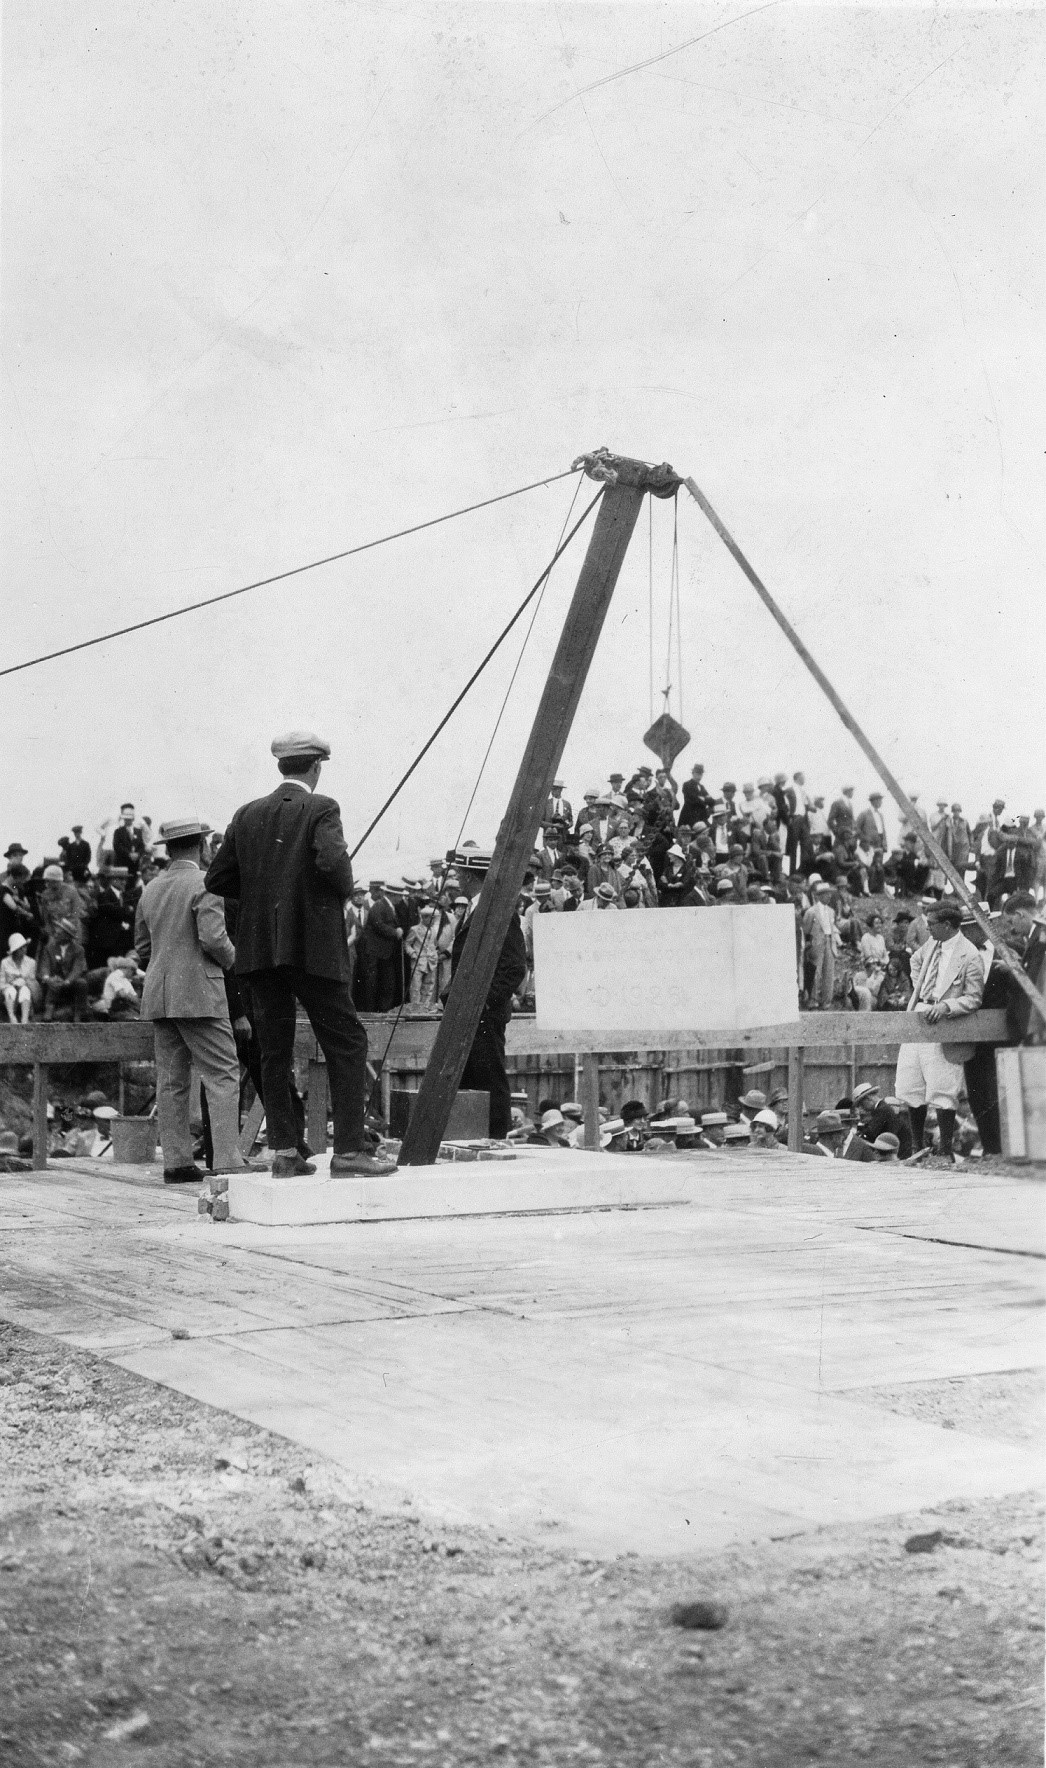 https://www.theosophical.org/images/stories/enews/September2016/laying-the-cornerstone-of-l-w-rogers-building.jpg